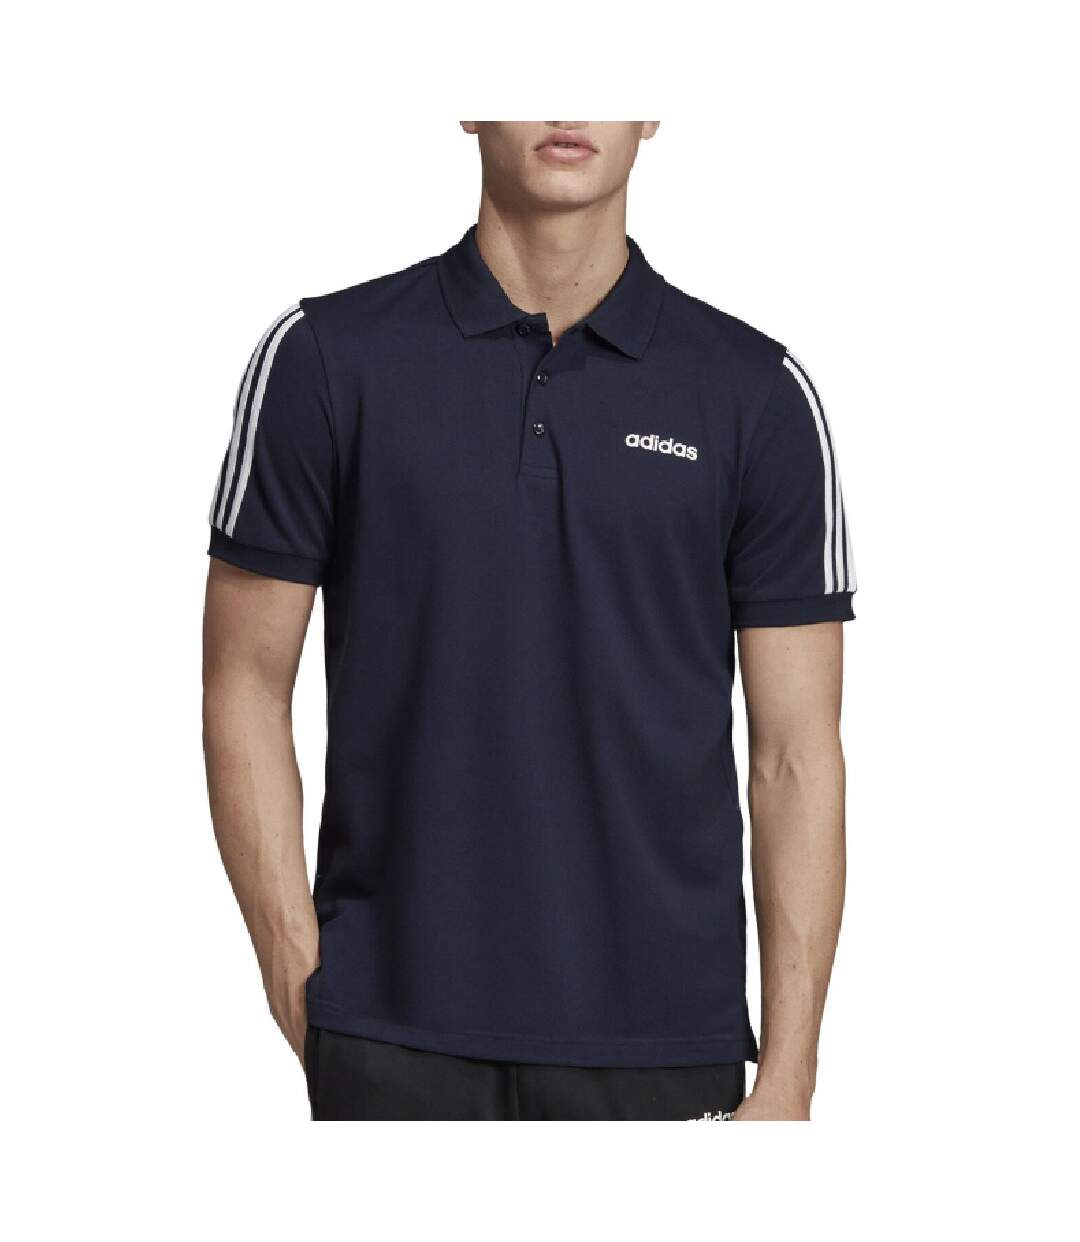 Polo marine homme Adidas M Cot Polo 3S